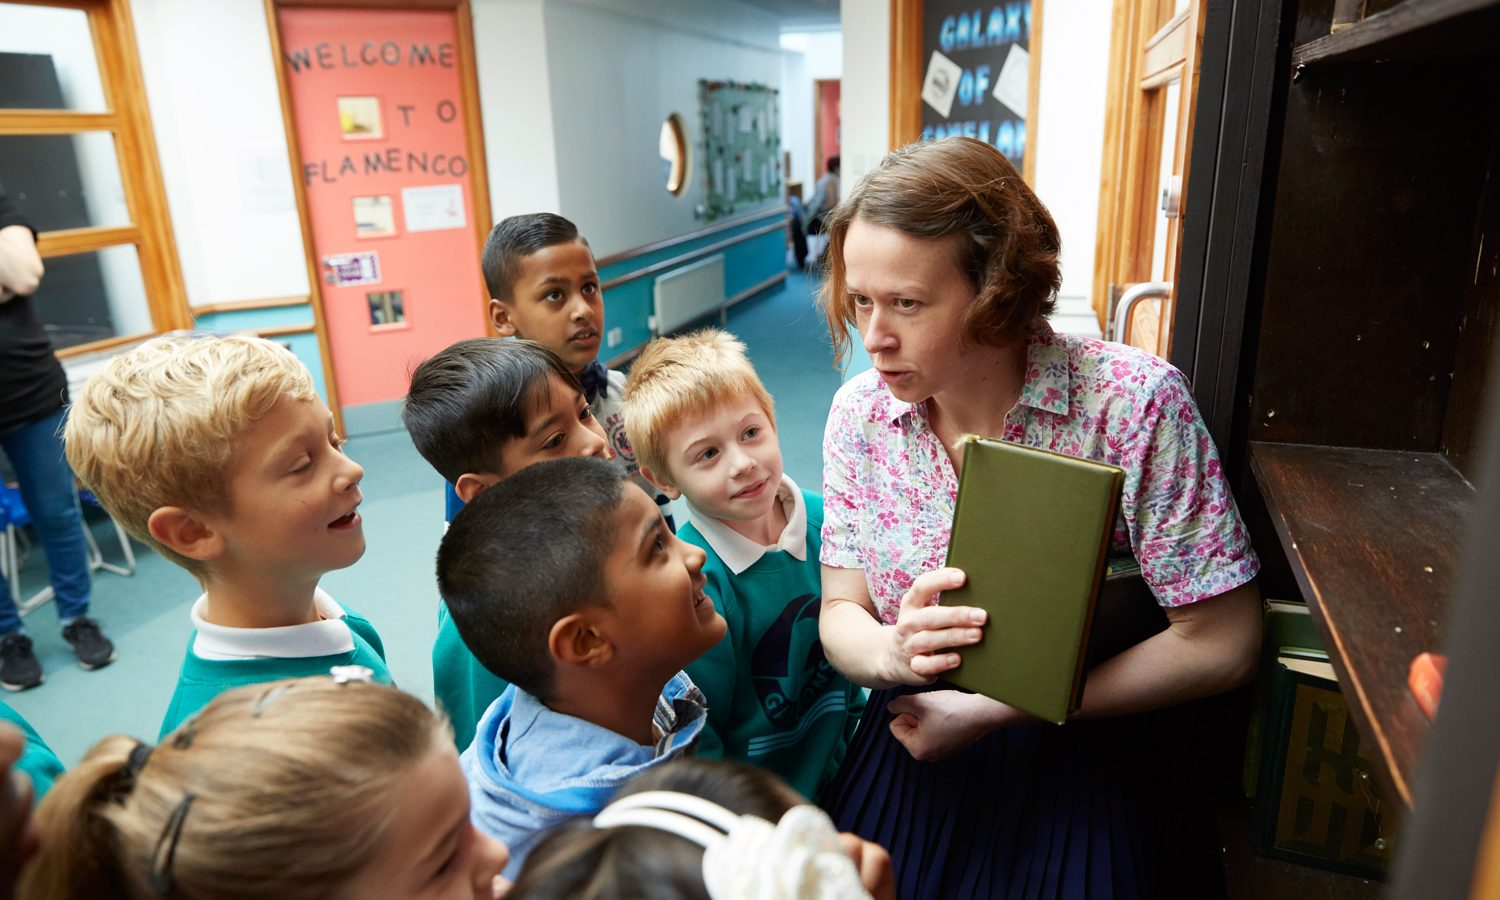 Adult performer holding a book and speaking to a group of young pupils in a school hallway